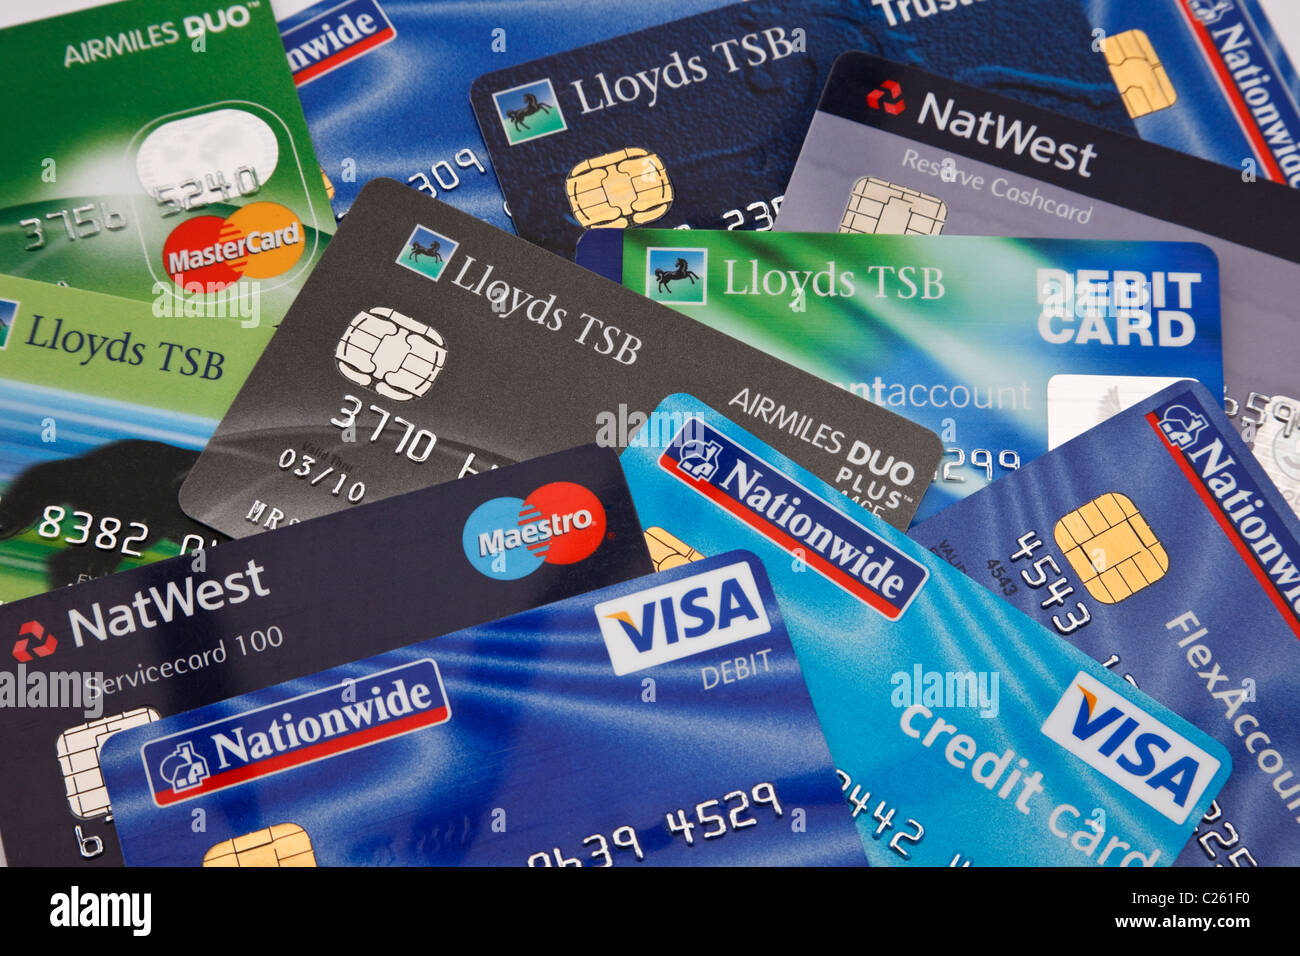 Lloyds Tsb Visa Card Stock Photos Lloyds Tsb Visa Card Stock